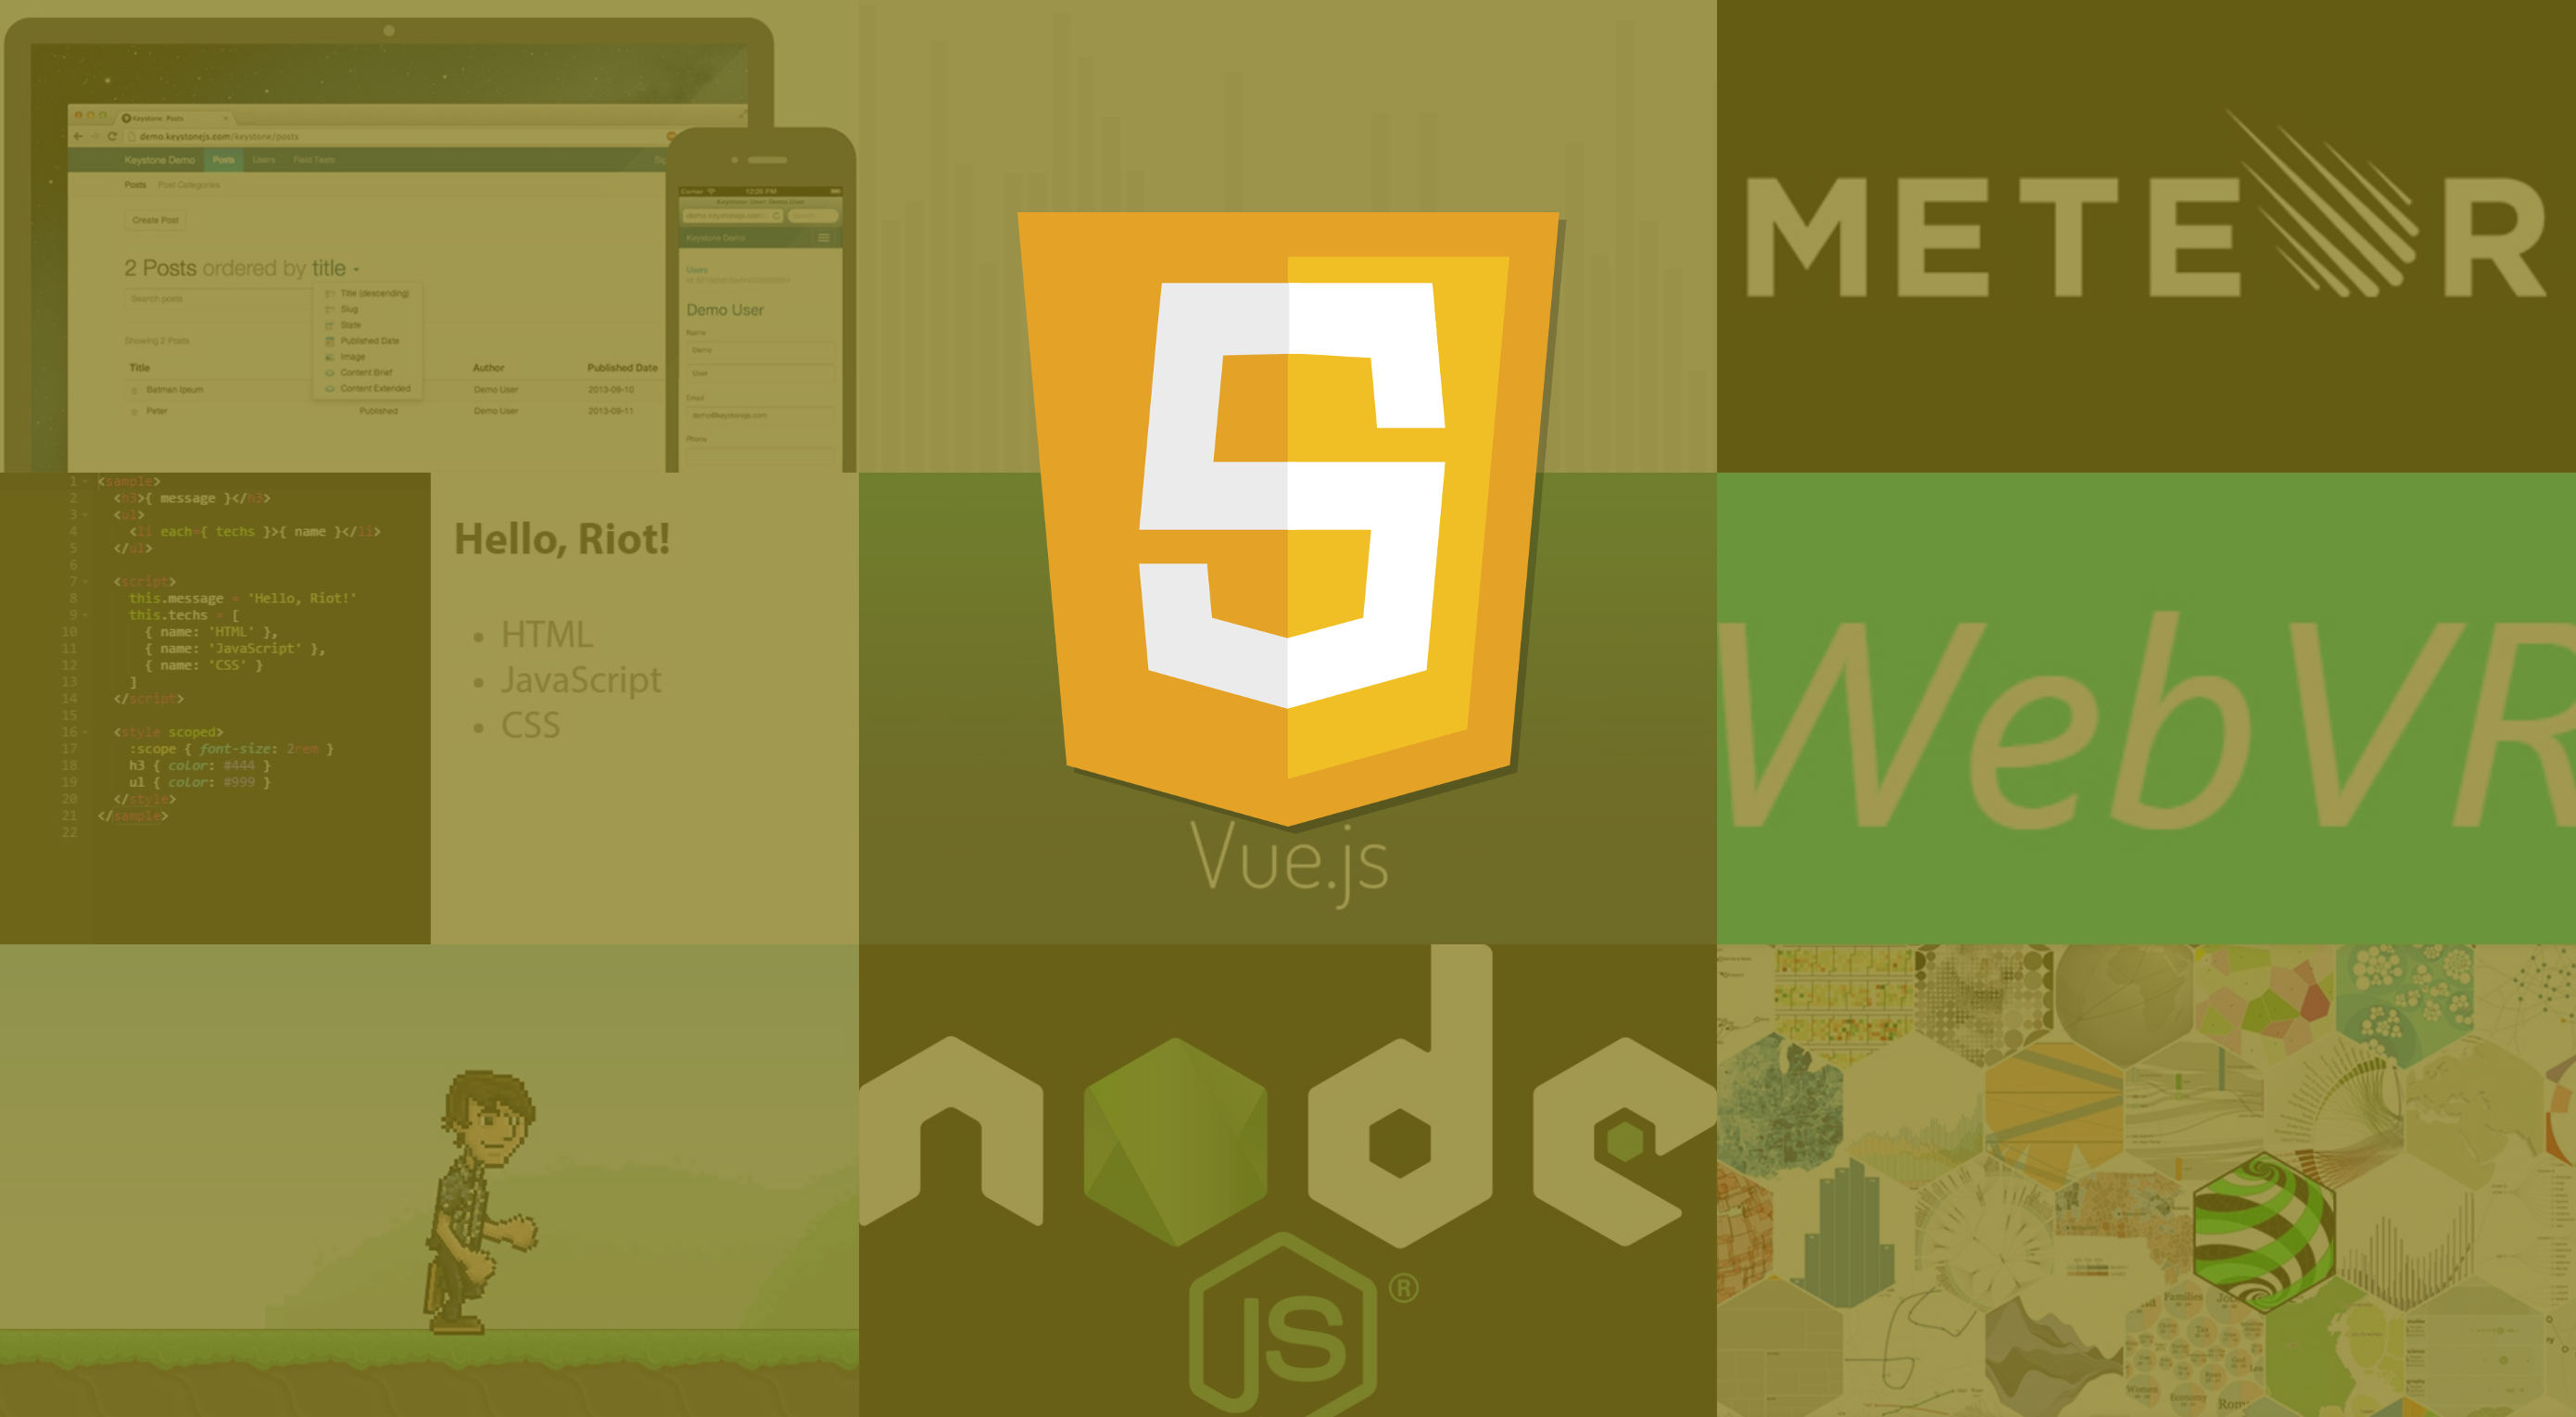 12 JavaScript libraries to watch in 2017